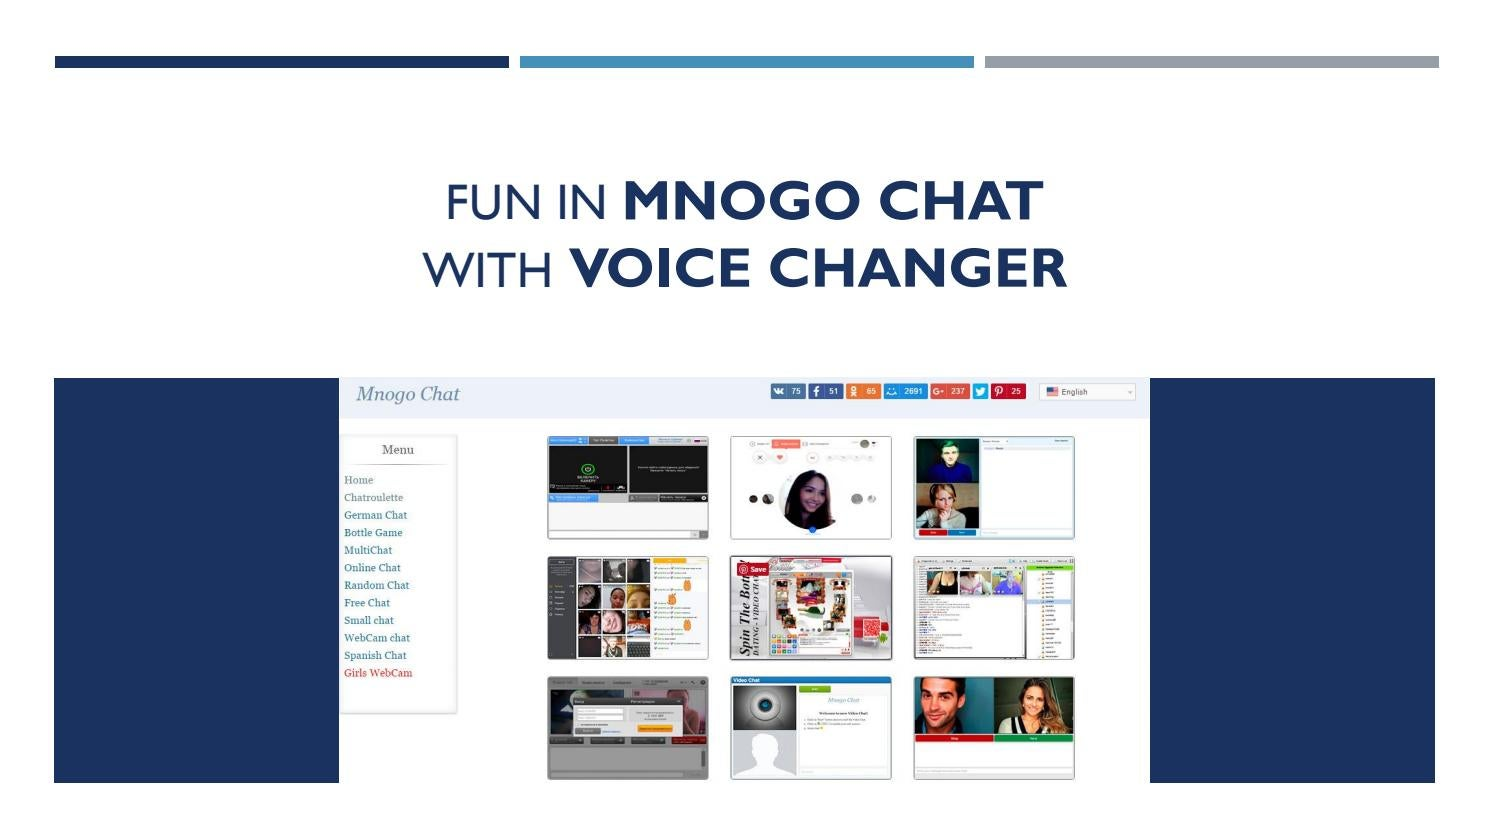 Fun in Mnogo Chat with Voice Changer by Audio4fun - issuu